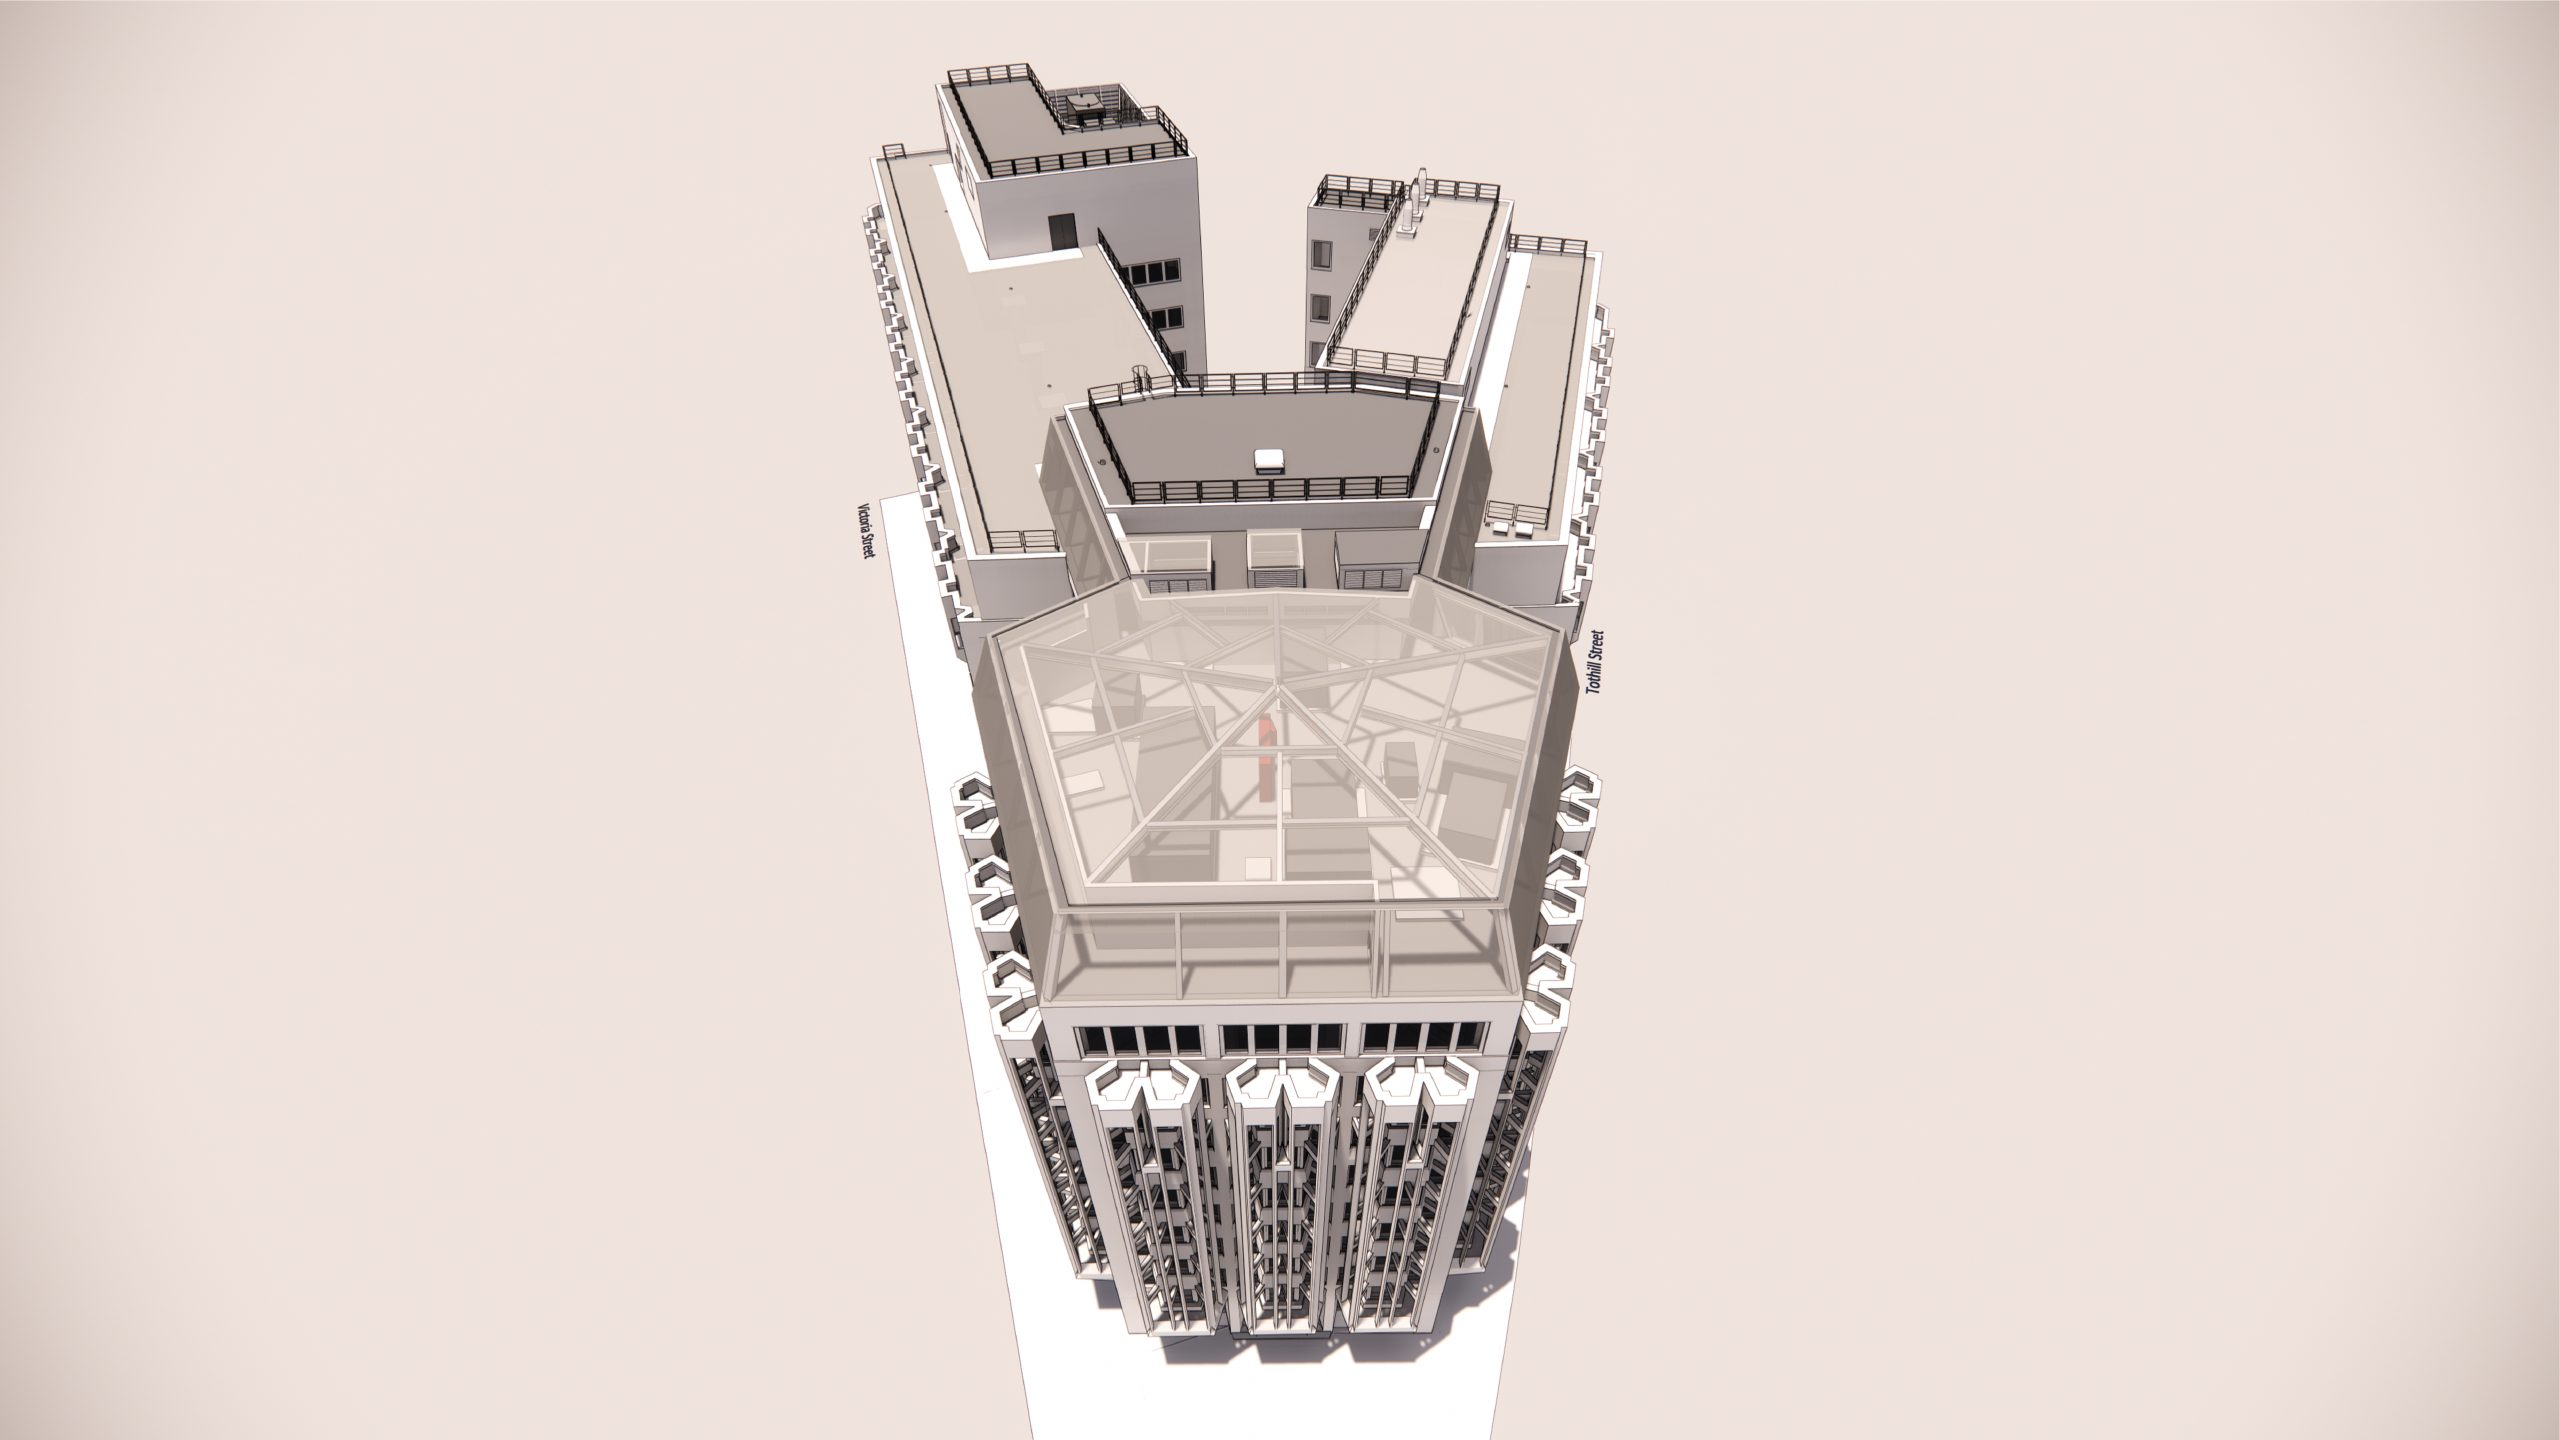 4 Victoria Street, rendering 3D from above